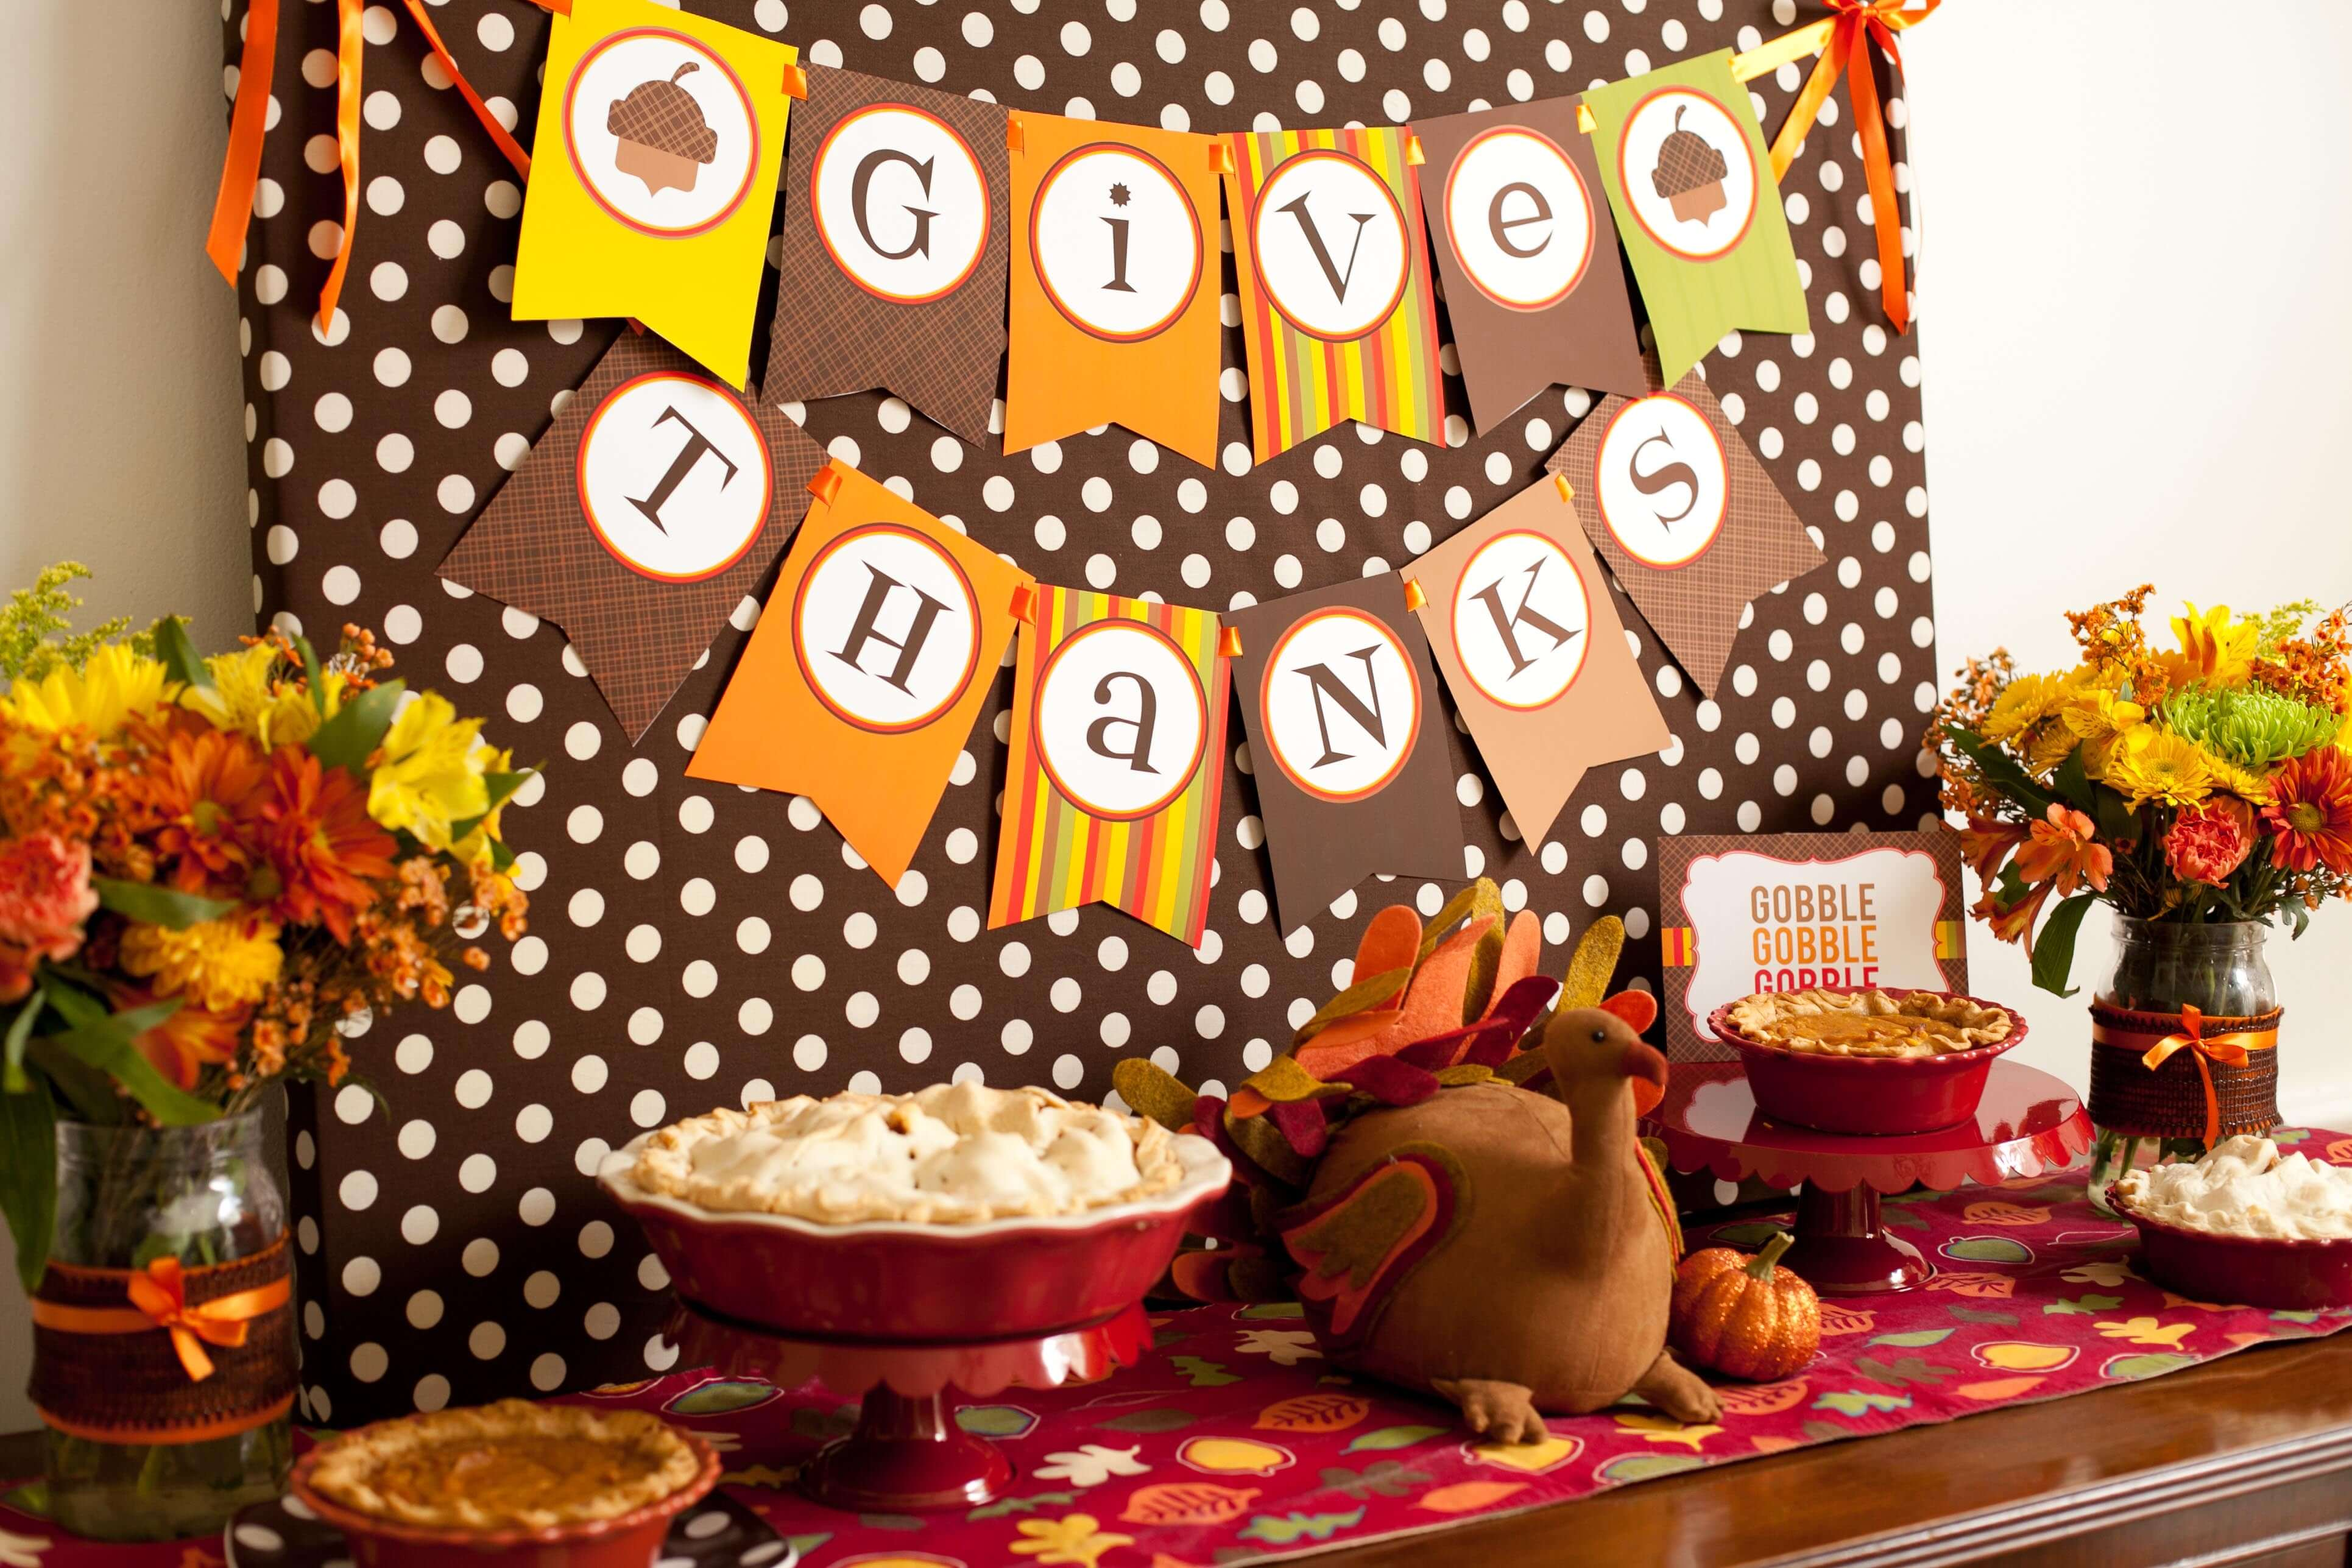 DIY fall decor for Thanksgiving dining experiences